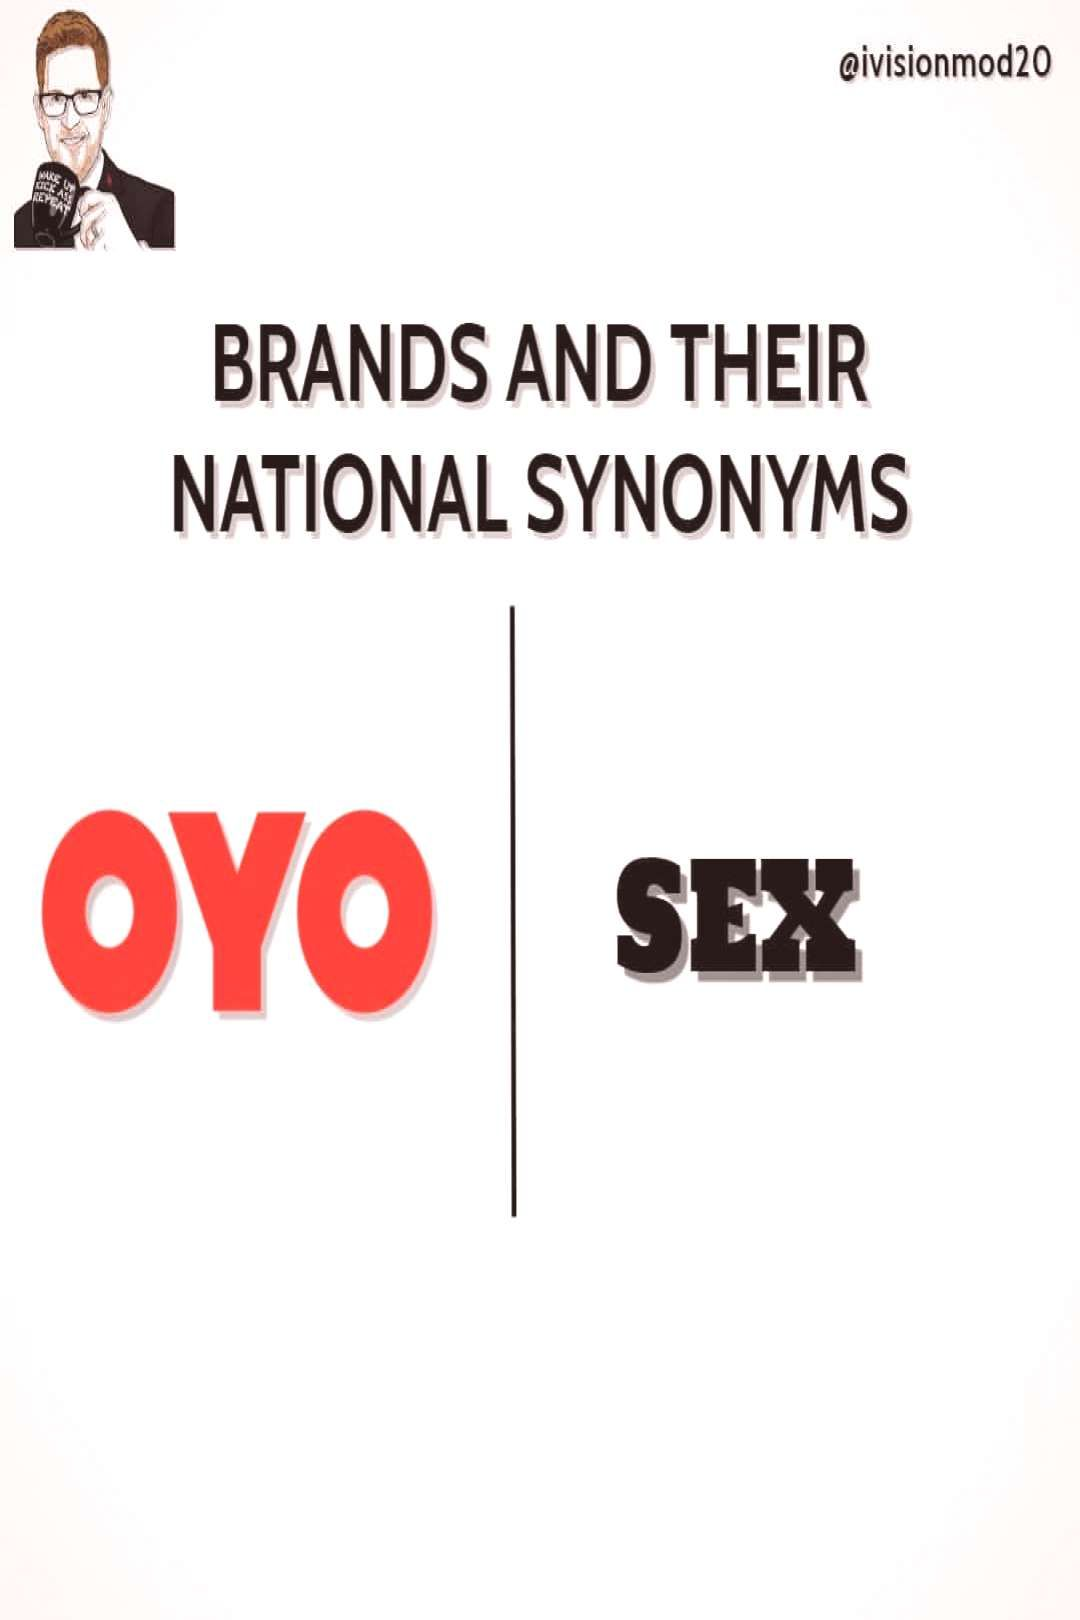 #personpossible #entrepreneur #ivisionmod20 #national #synonyms #branding #suggest #brands #their #text #sony #that #says #oyo #and Can you suggest for Sony Max . . .com . . #brandi...